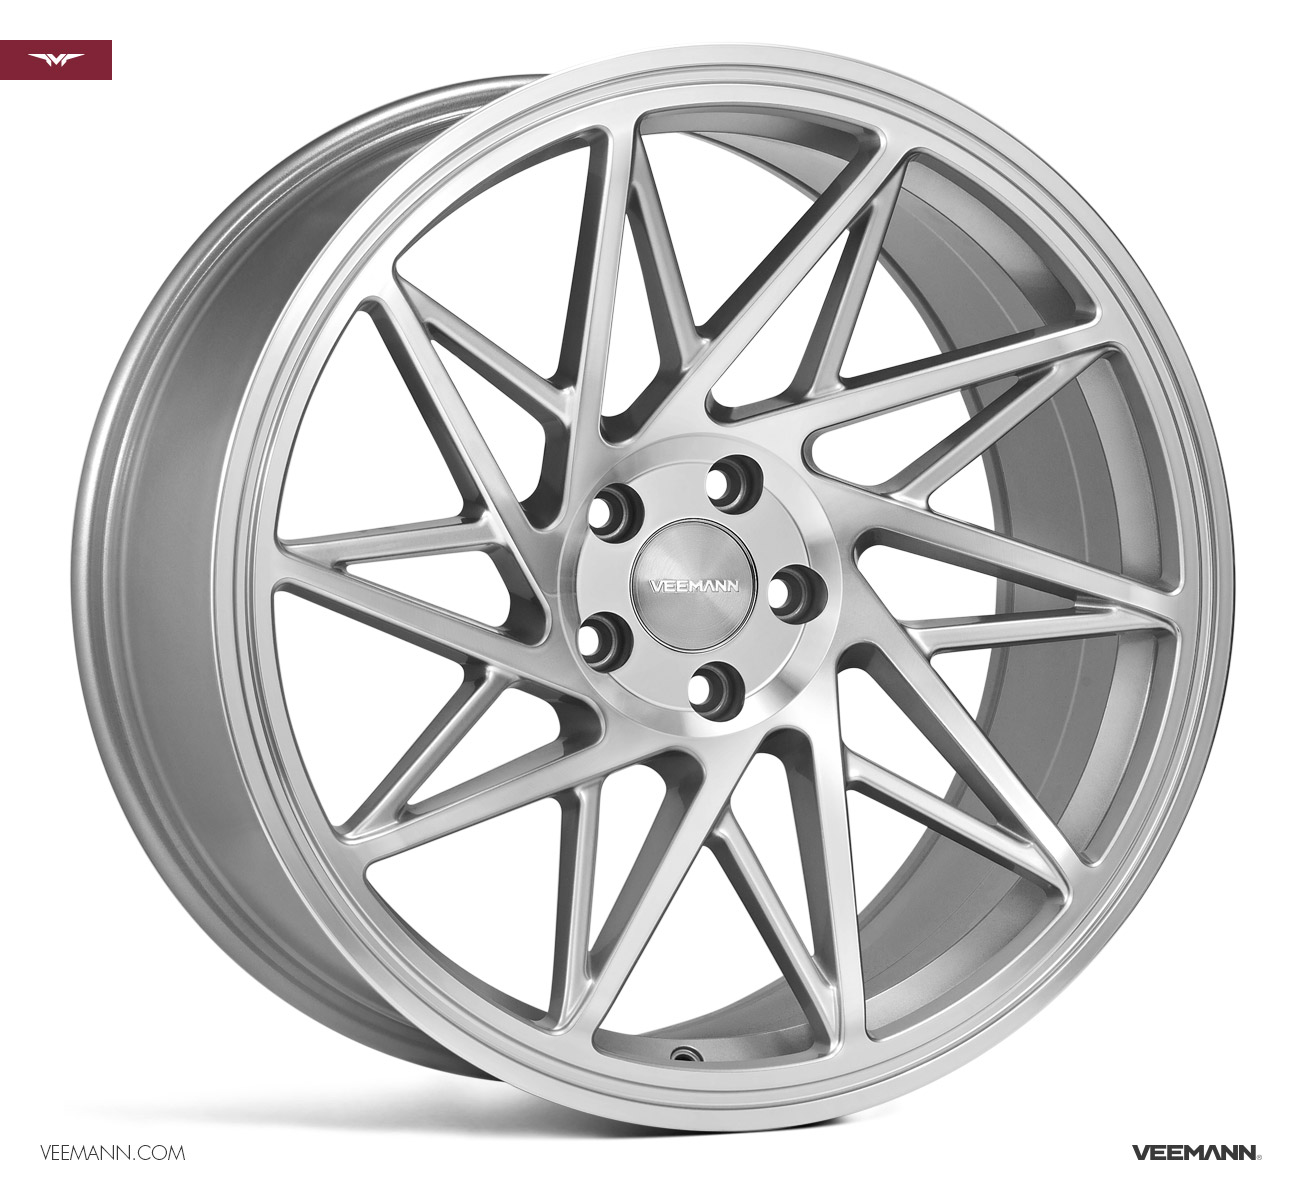 "NEW 19"" VEEMANN V-FS35 ALLOY WHEELS IN SILVER POL WITH WIDER 9.5"" REARS"